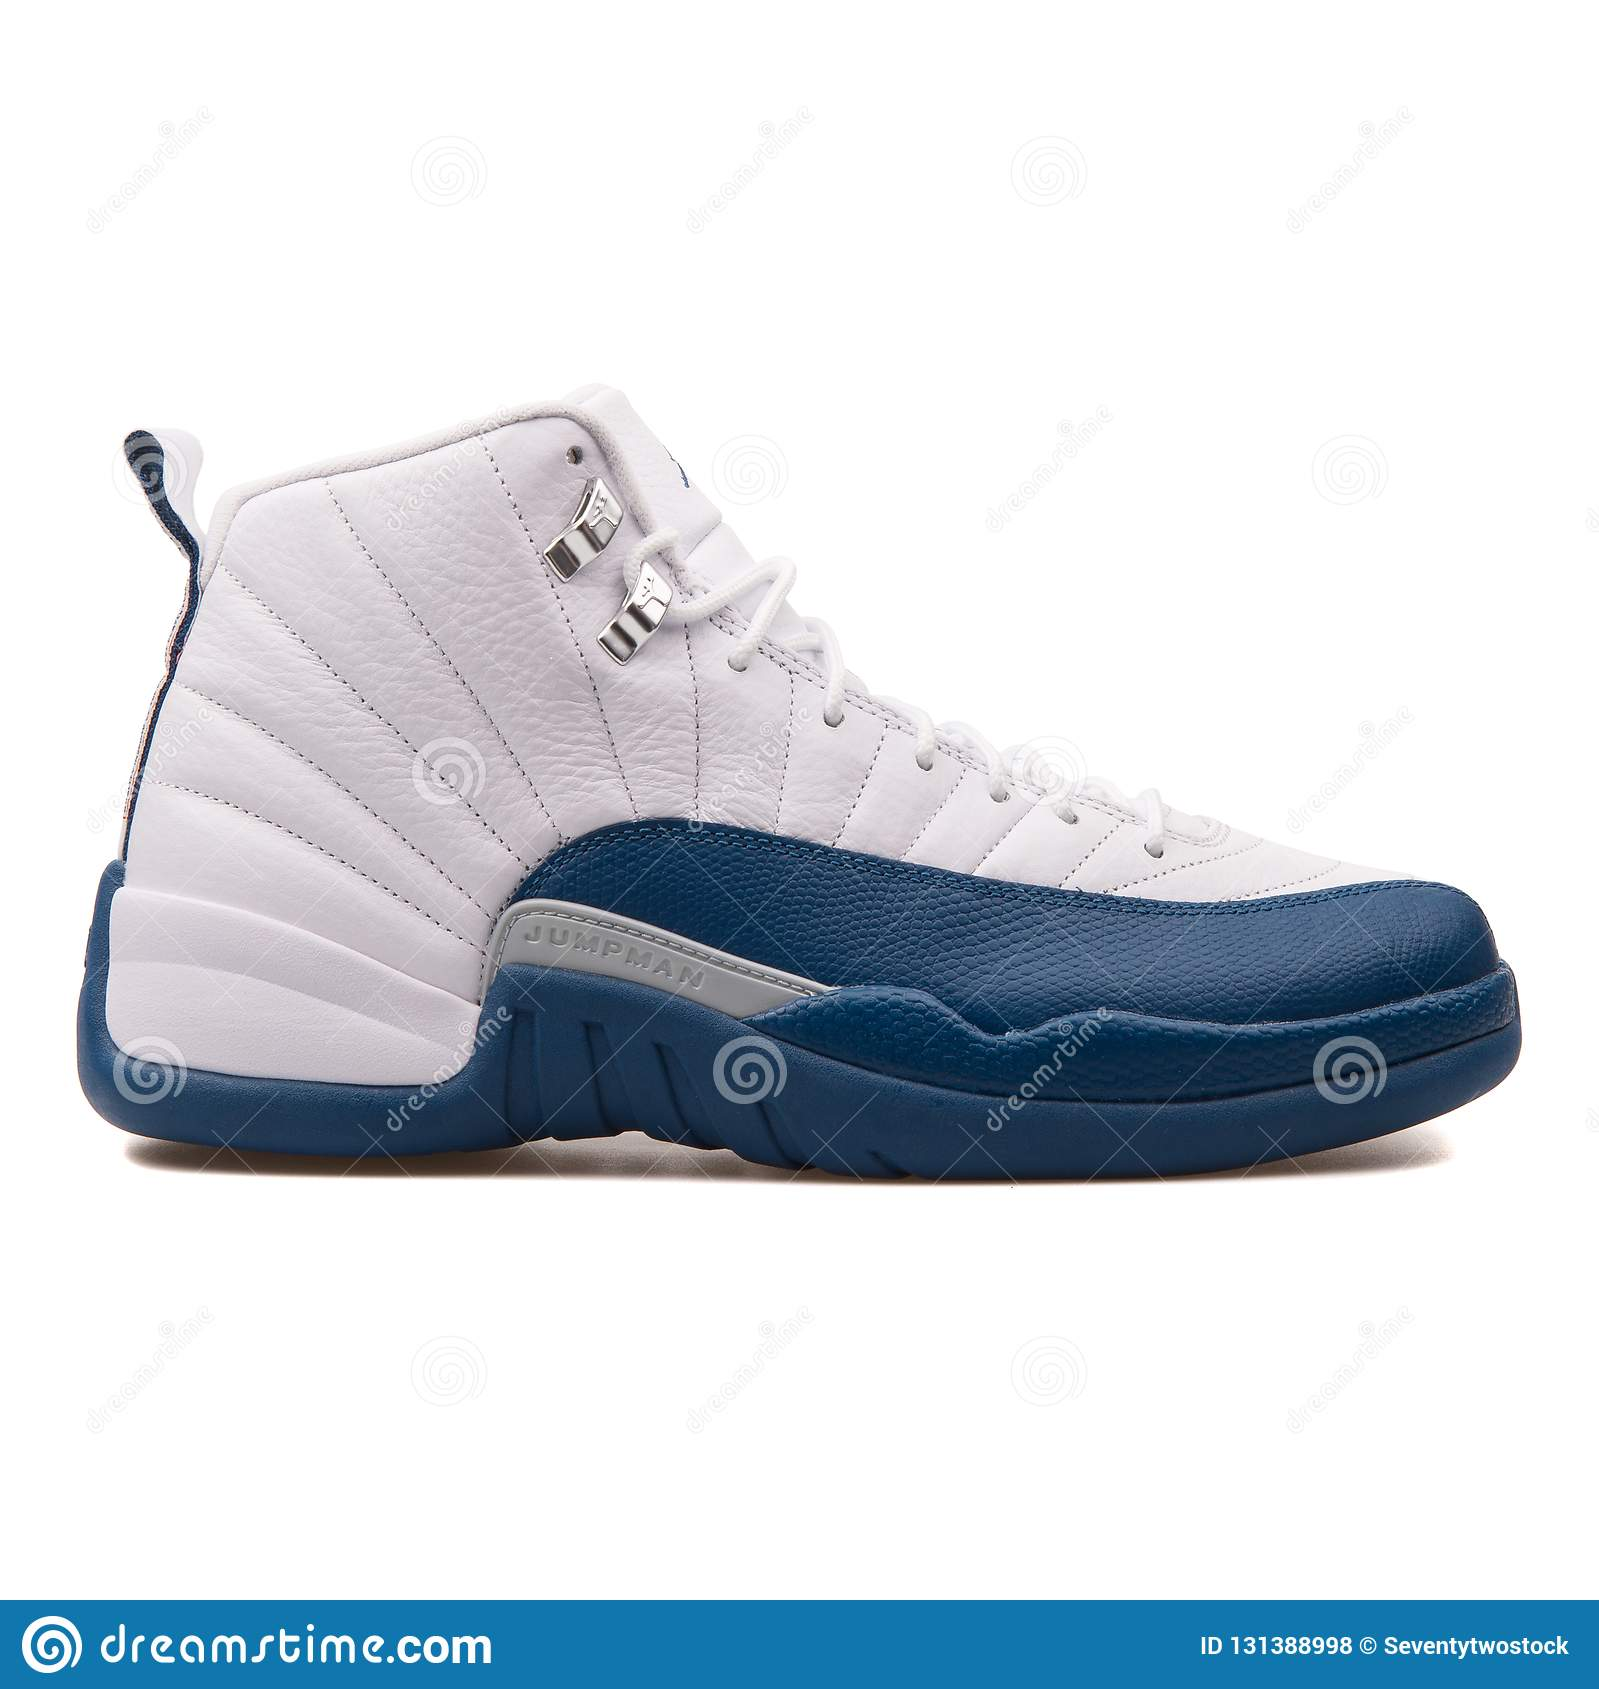 9ed938c38c5 Nike Air Jordan 12 Retro metallic silver and french blue sneaker isolated  on white background